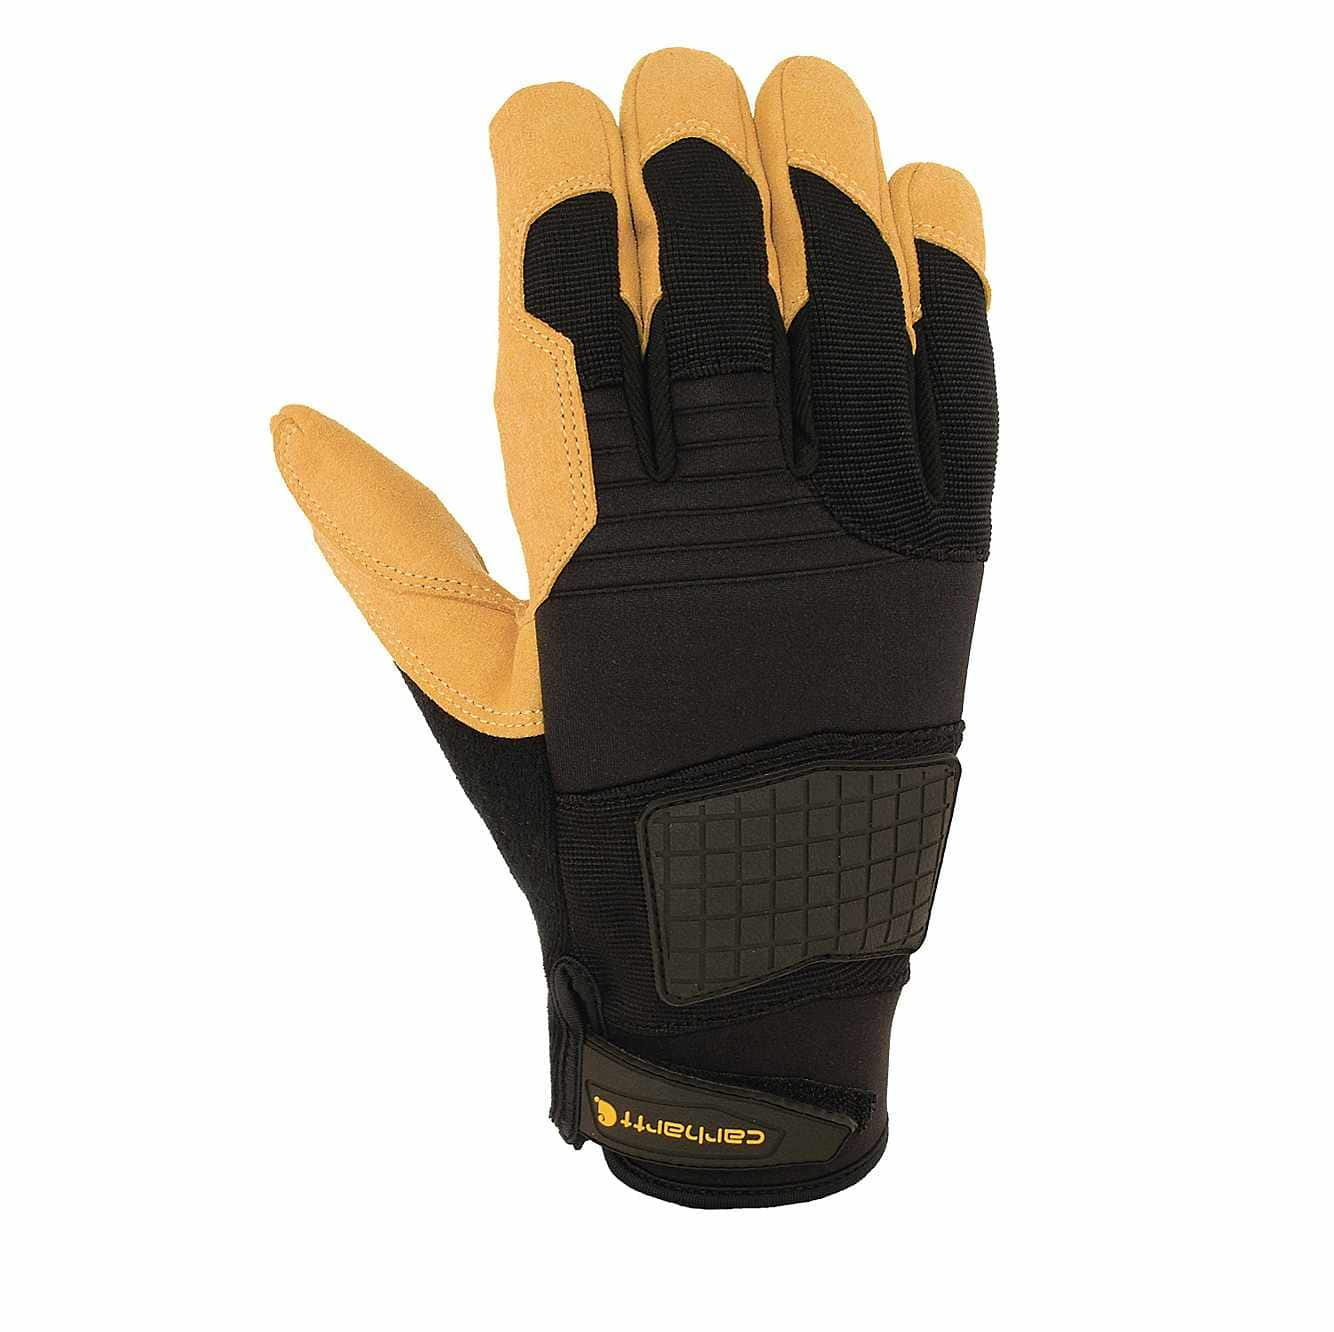 Picture of Bolt High-Dexterity Glove in Black Barley